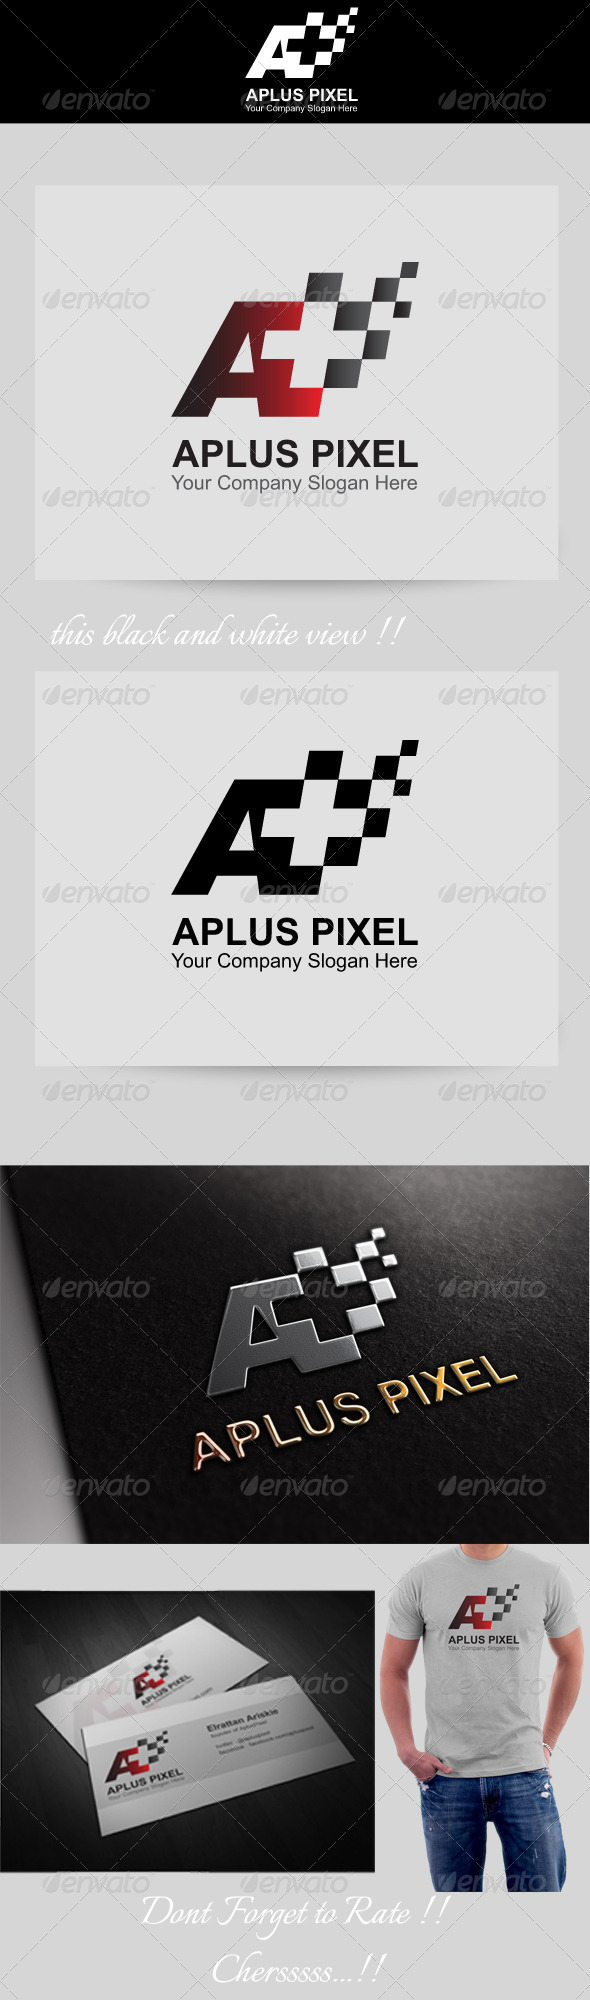 GraphicRiver A Plus Pixel A Plus Race Flag LOGO 4527914